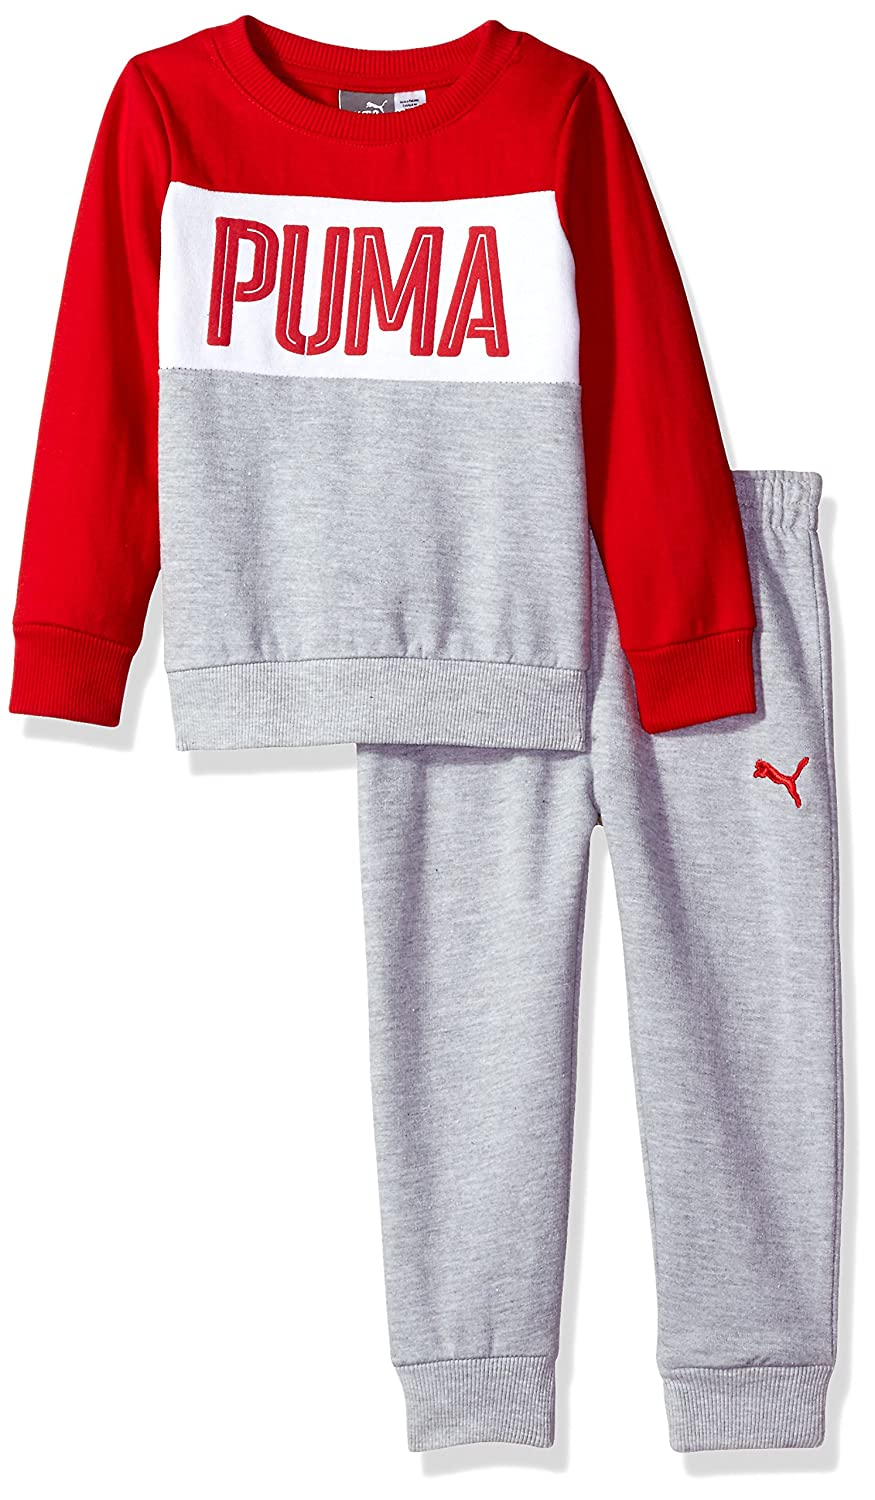 PUMA Boys Toddler Boys Boys' Two Piece Fleece Set